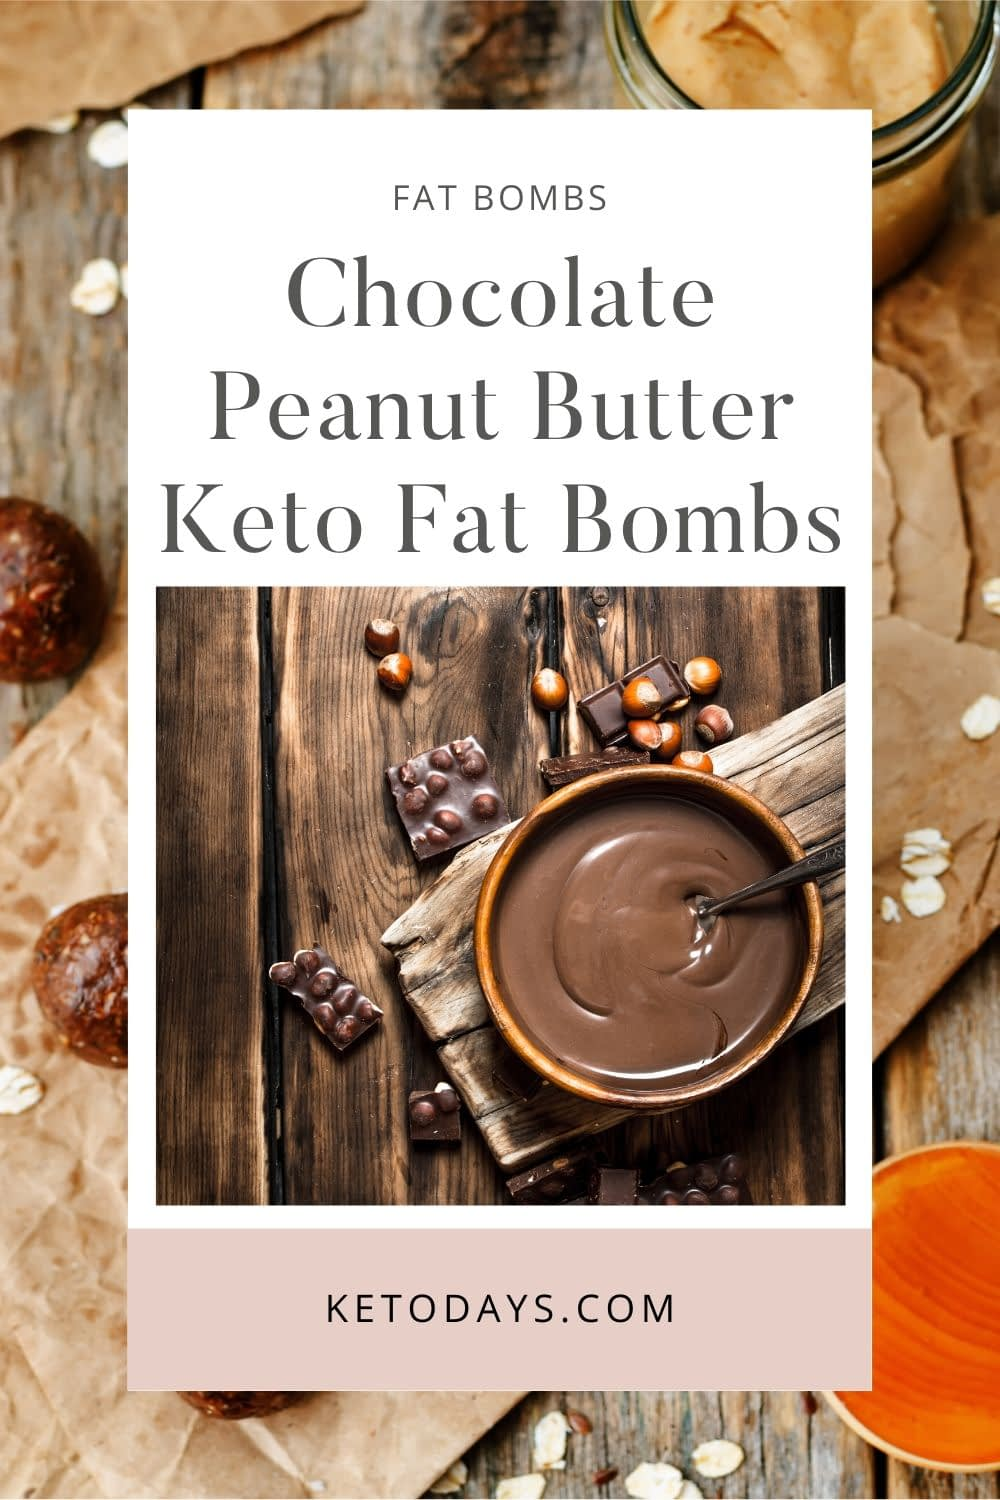 Chocolate Peanut Butter Keto Fat Bombs